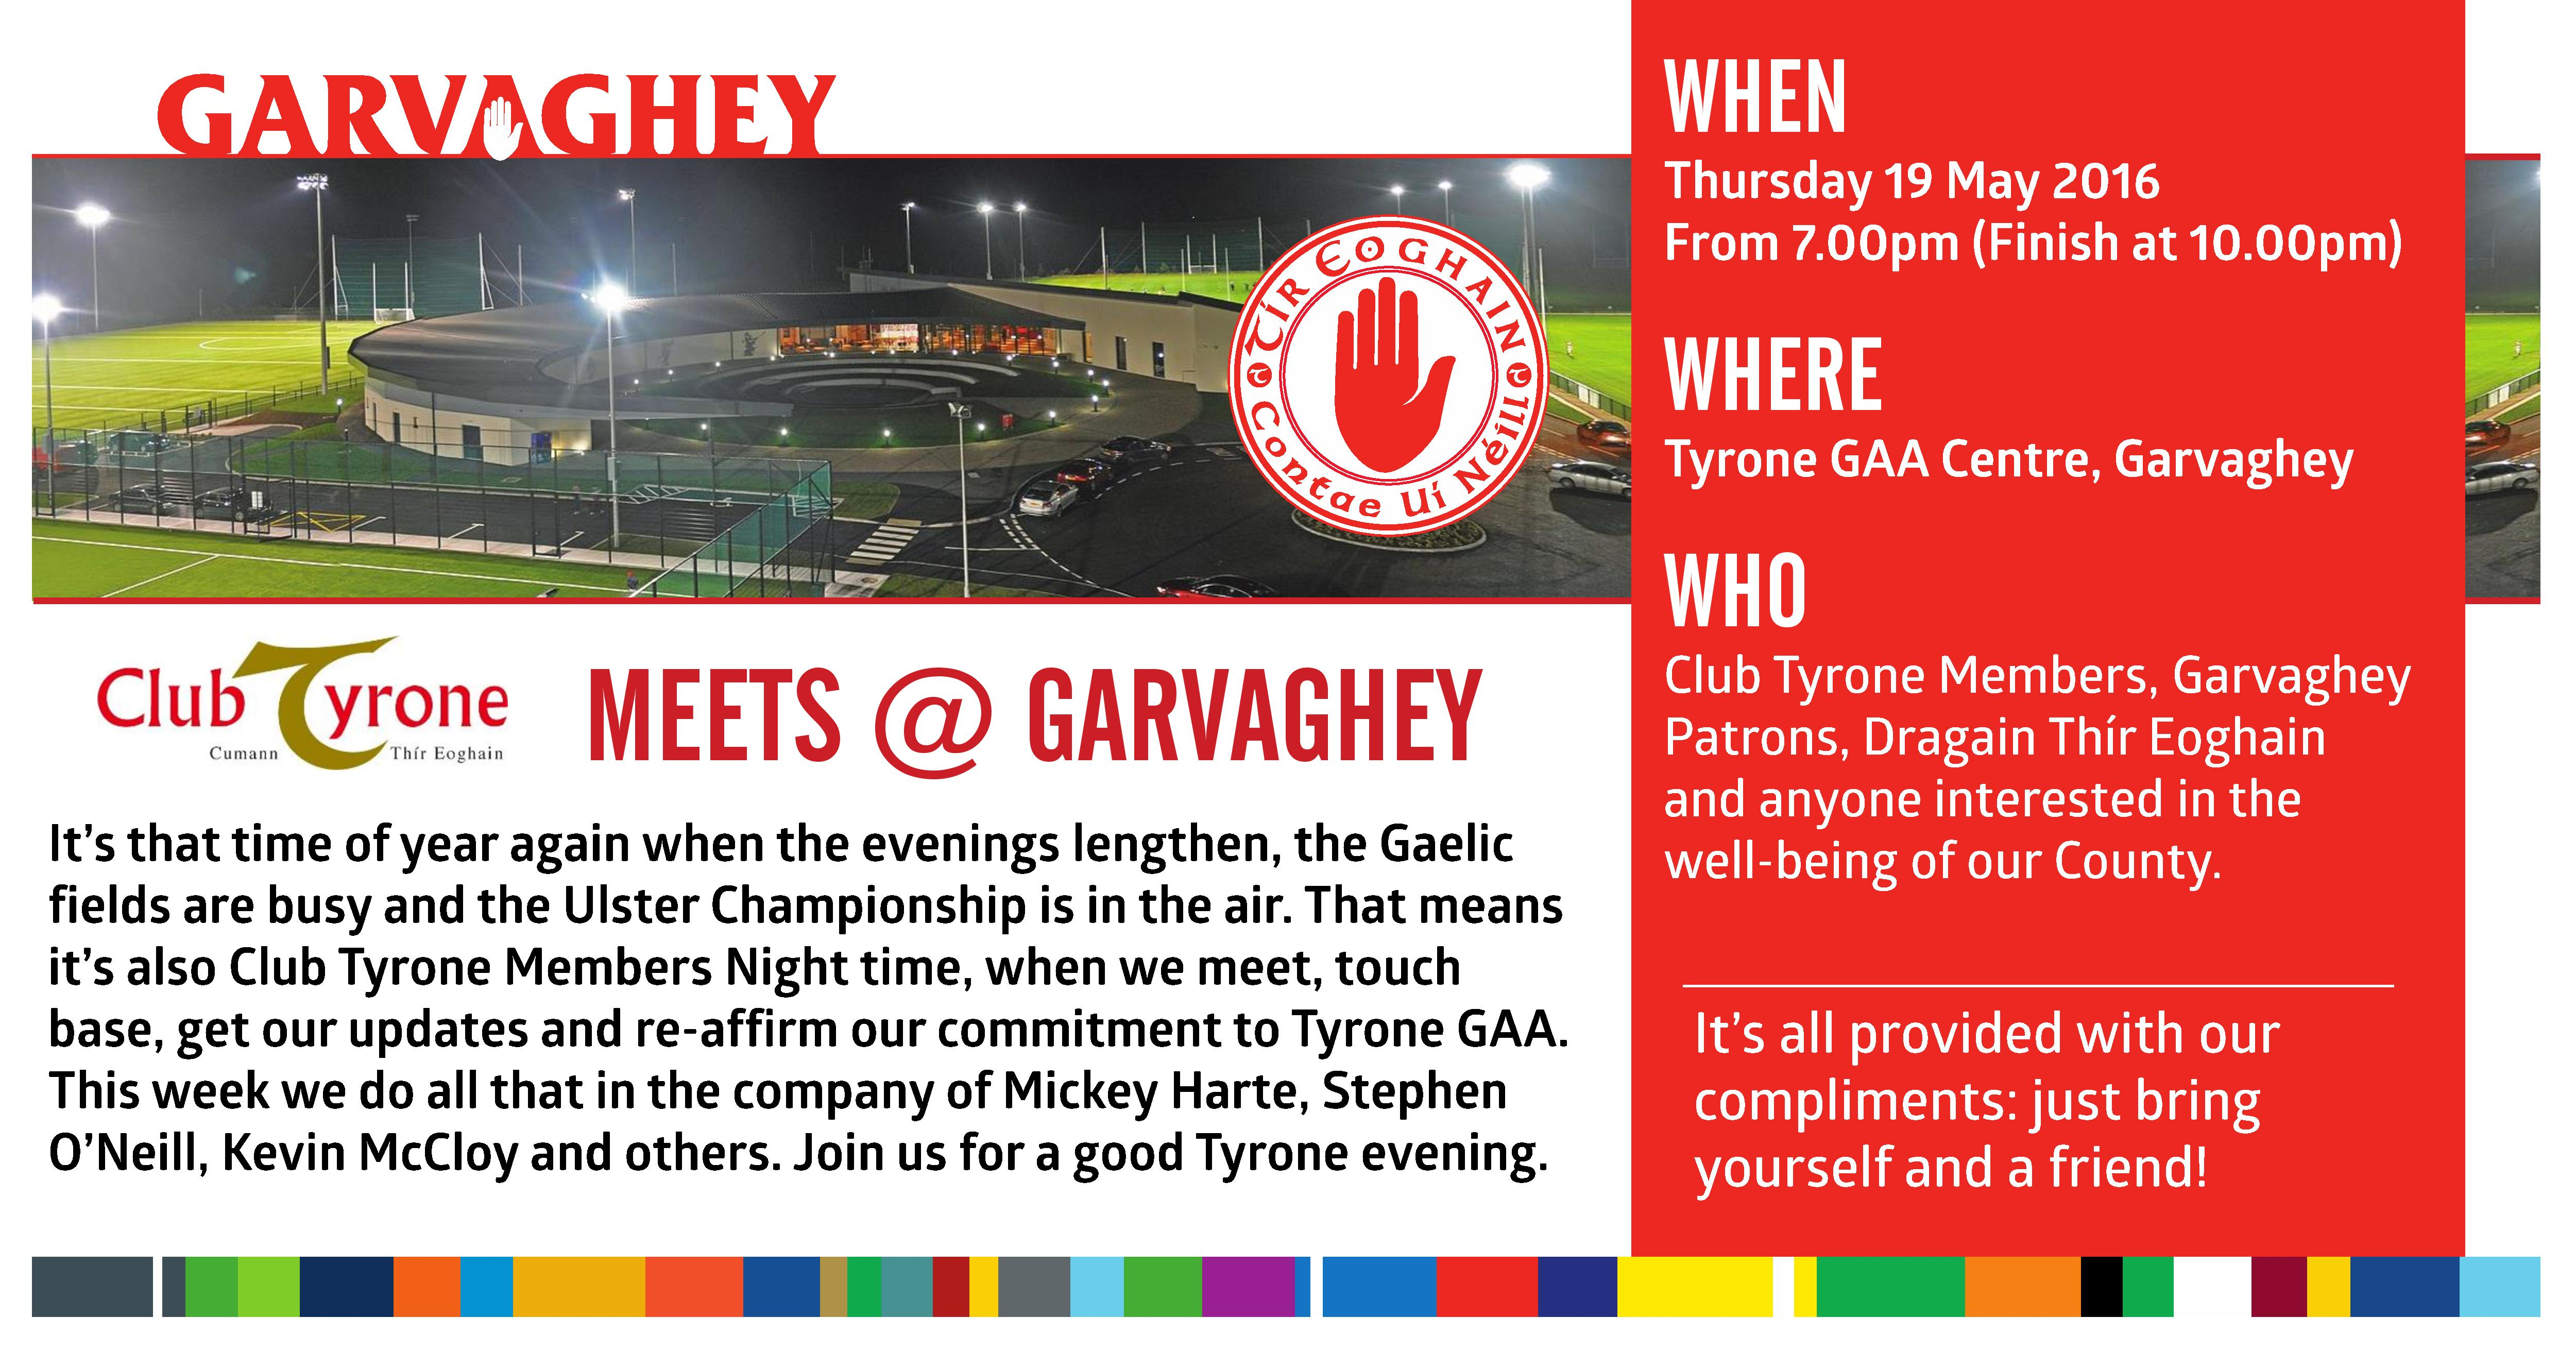 Club Tyrone Member's night – Thursday in Garvaghey